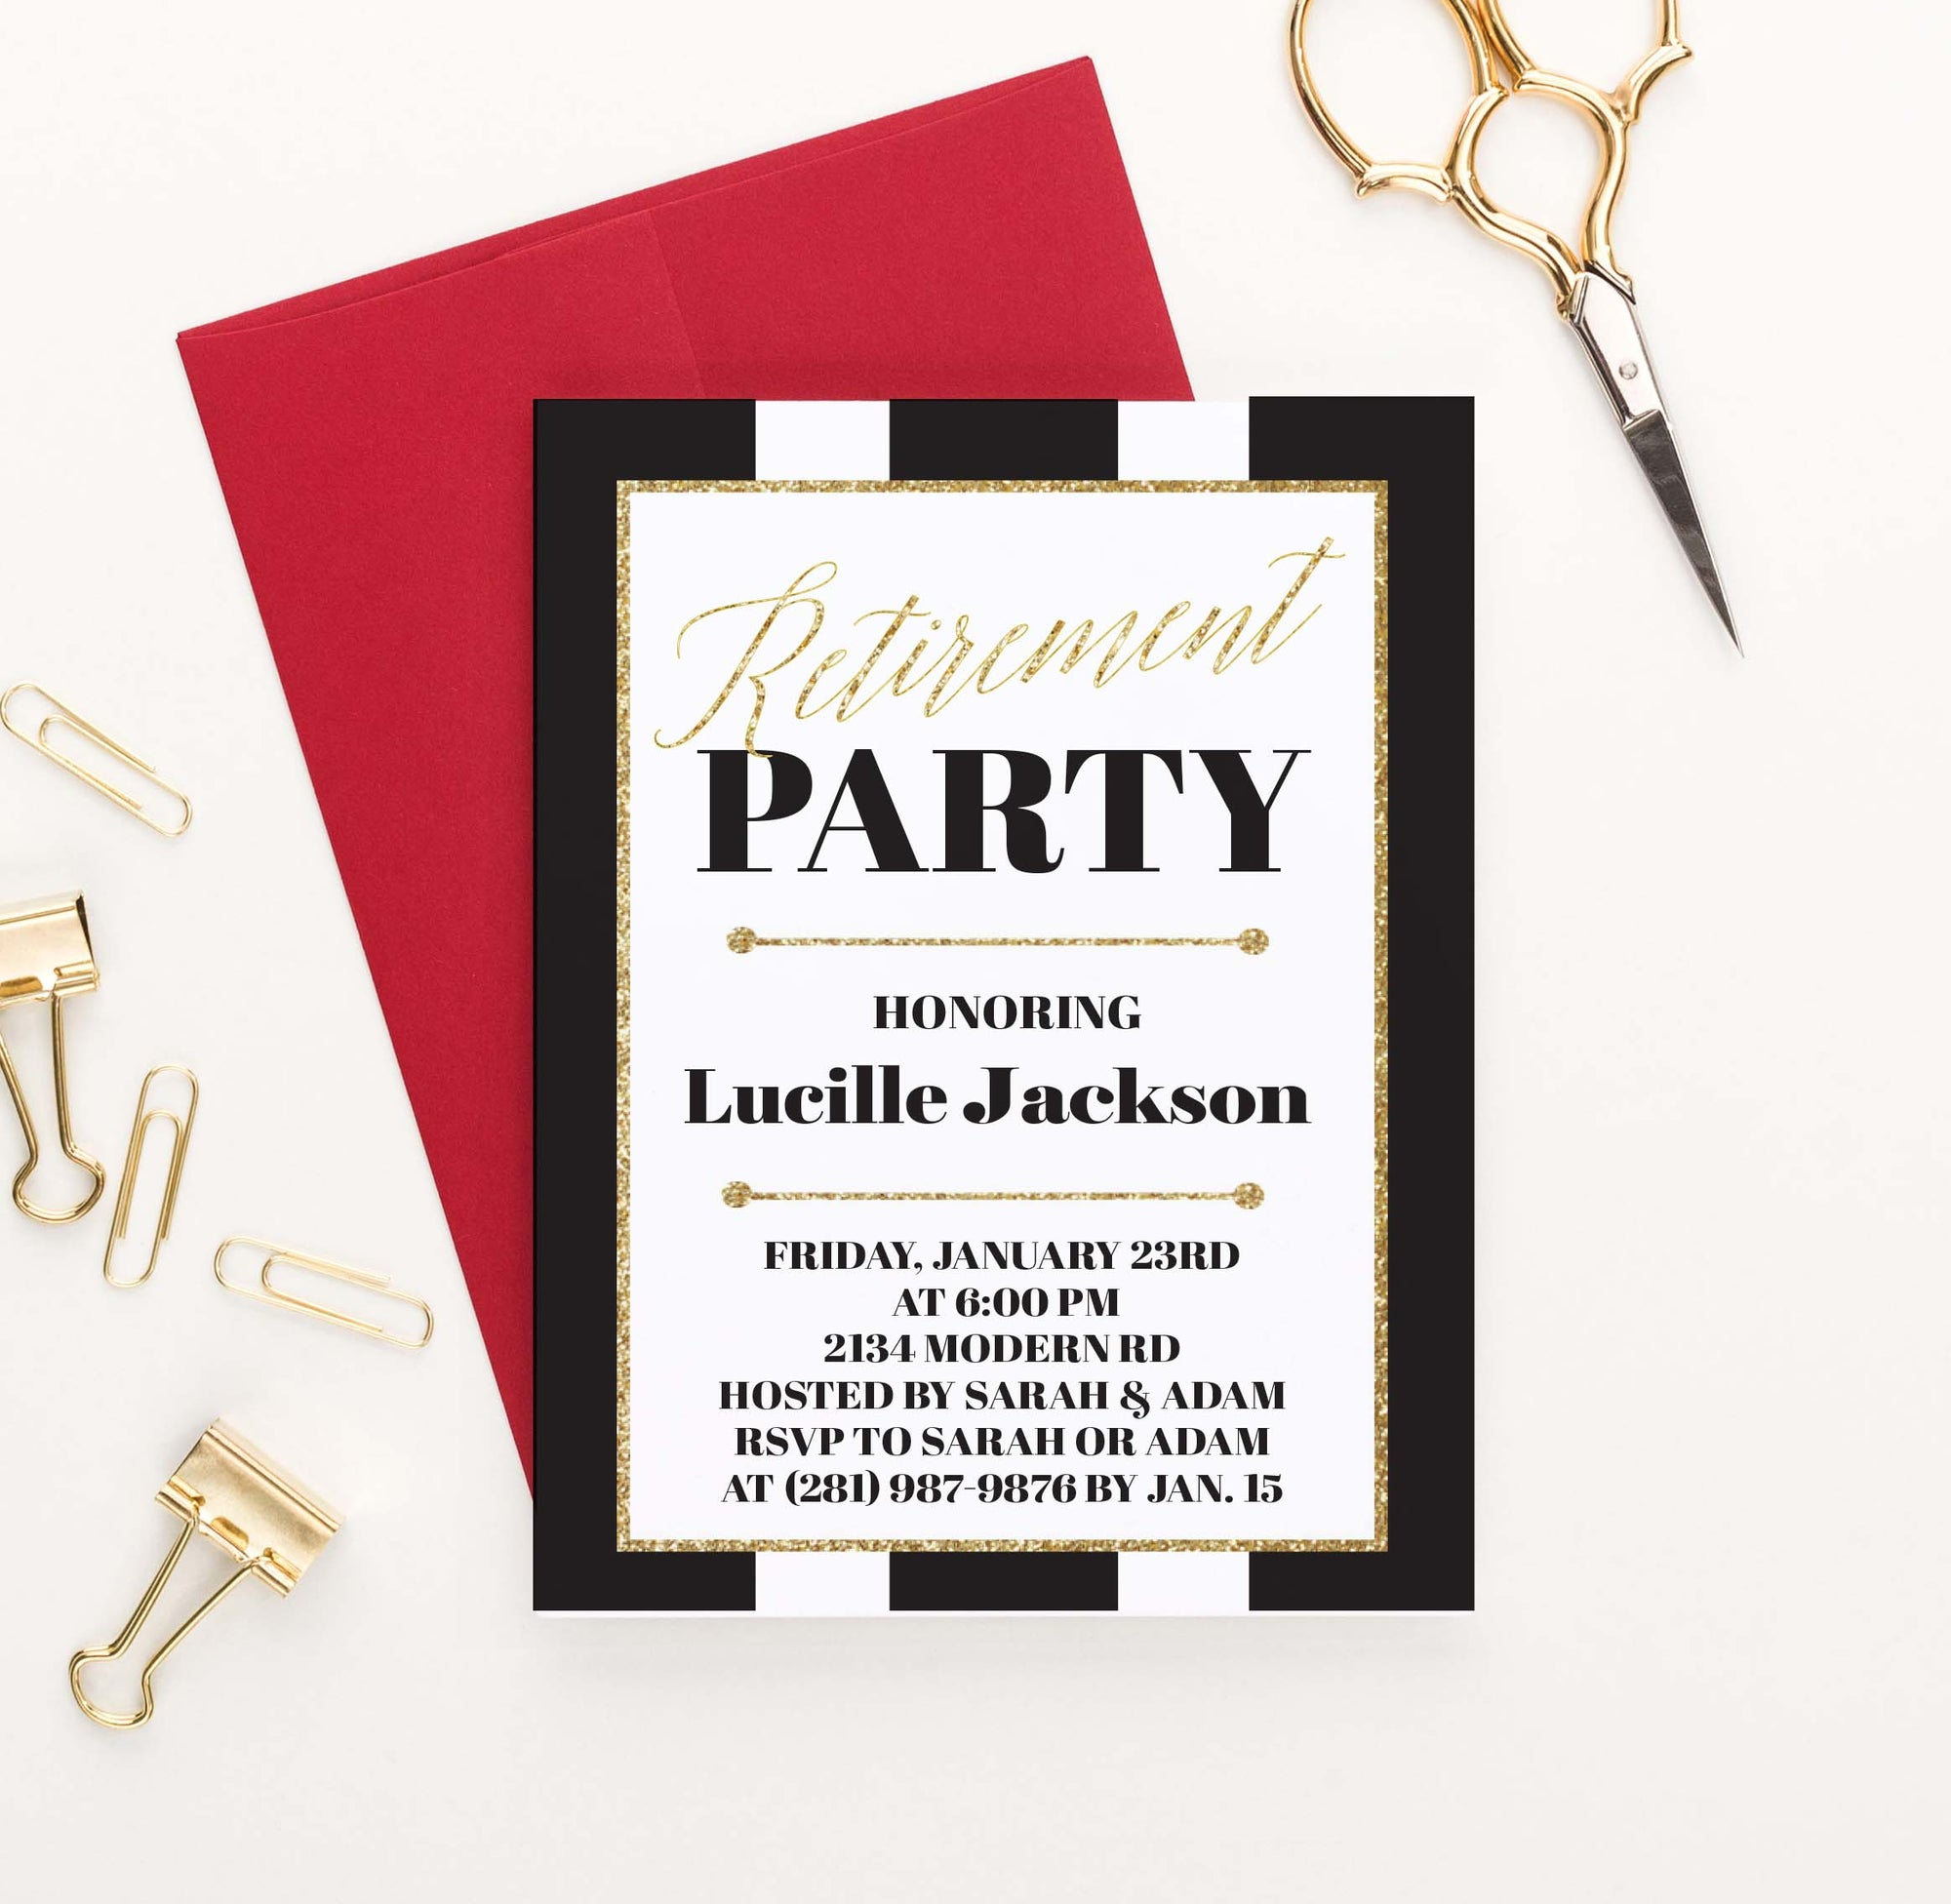 RPI001 black and gold personalized retirement party invitation elegant